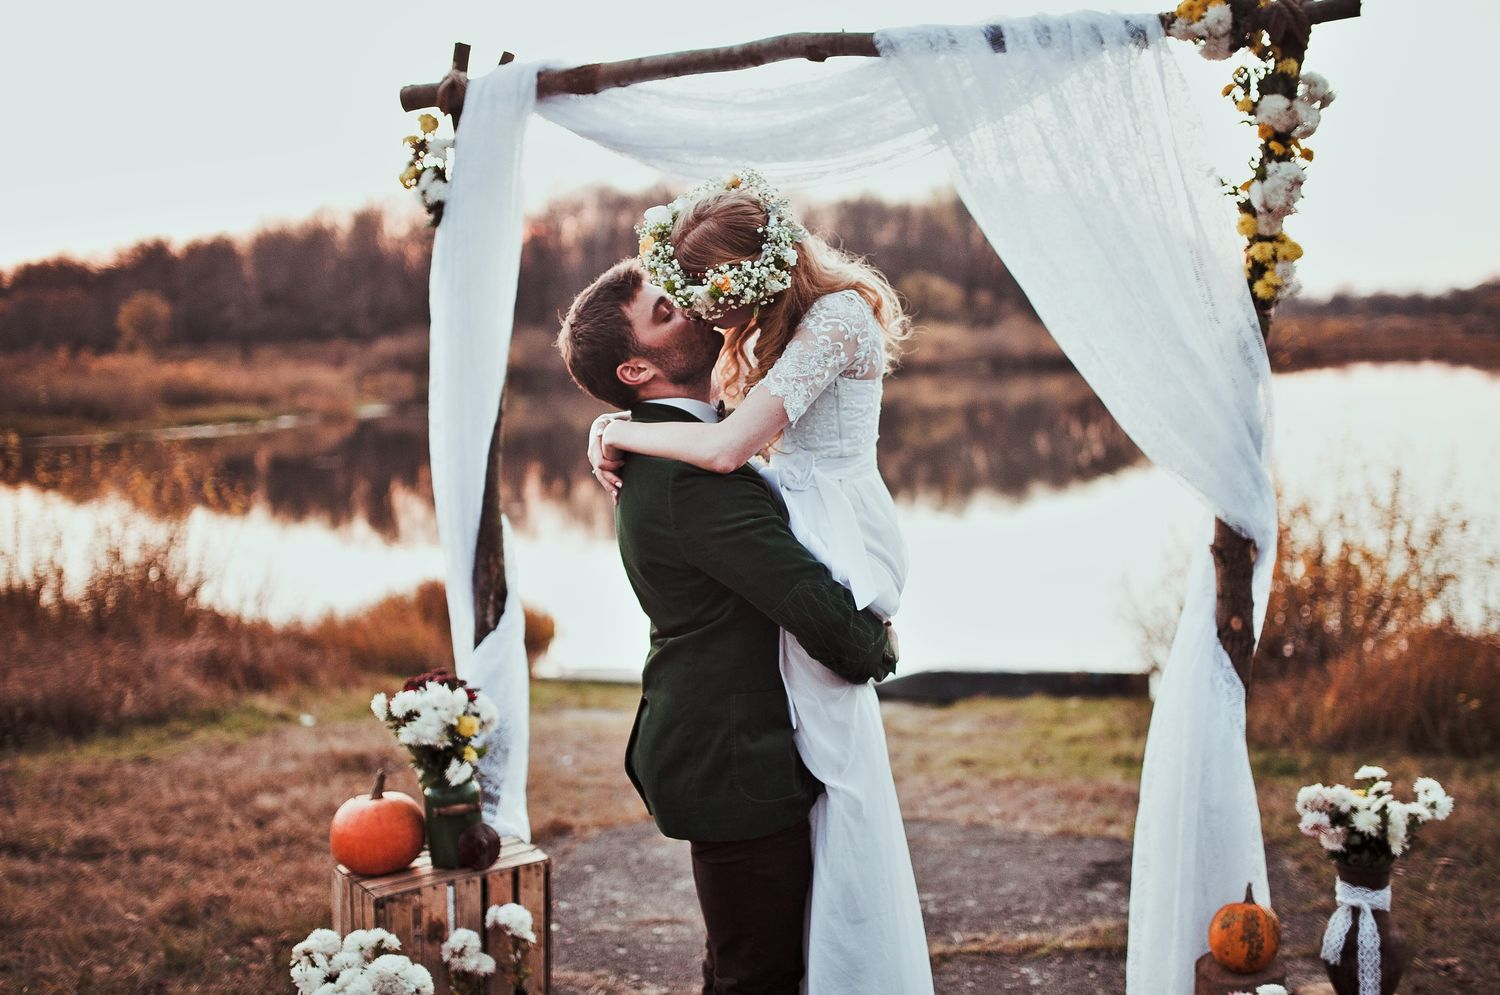 Top 10 Unusual Wedding Venues For Quirky Couples,Stella York Wedding Dress Prices Uk